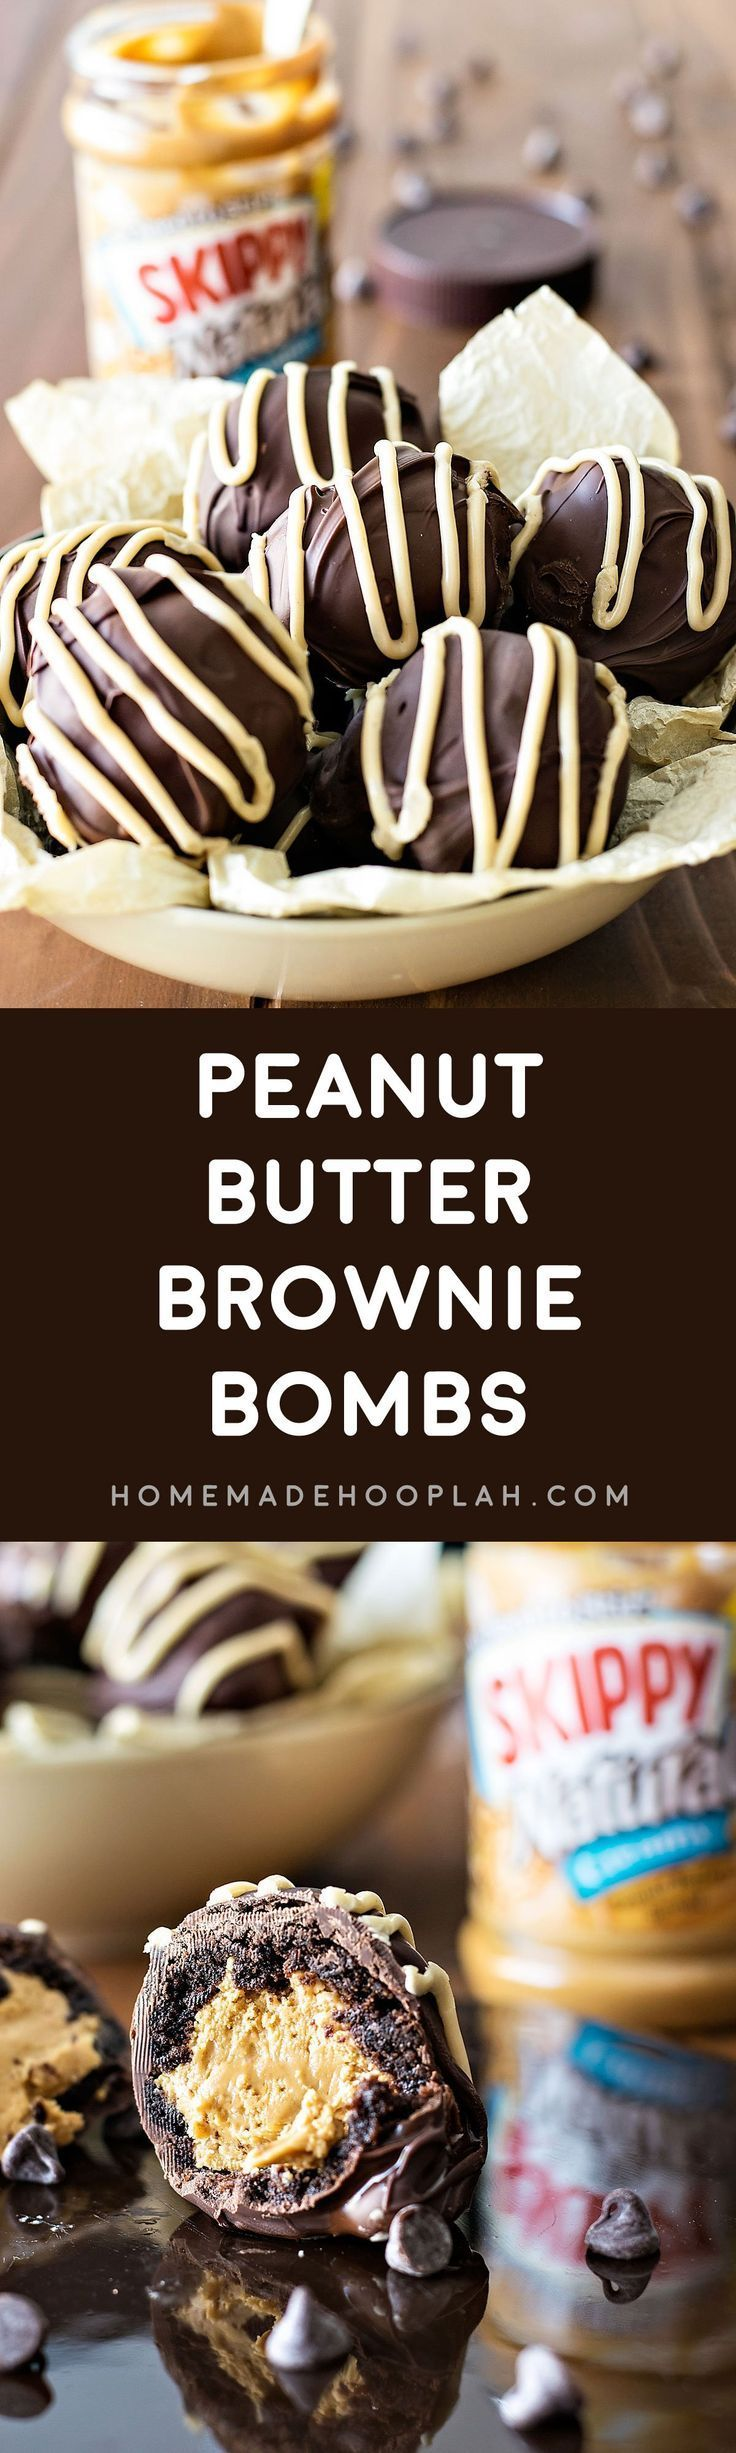 Peanut Butter Brownie Bombs! These peanut butter brownie bombs are perfect for all occasions and celebrations! Rich brownies filled with SKIPPY®️️ peanut butter and covered with chocolate and peanut butter royal icing. | HomemadeHooplah.com #SKIPPYYIPPEE #spon